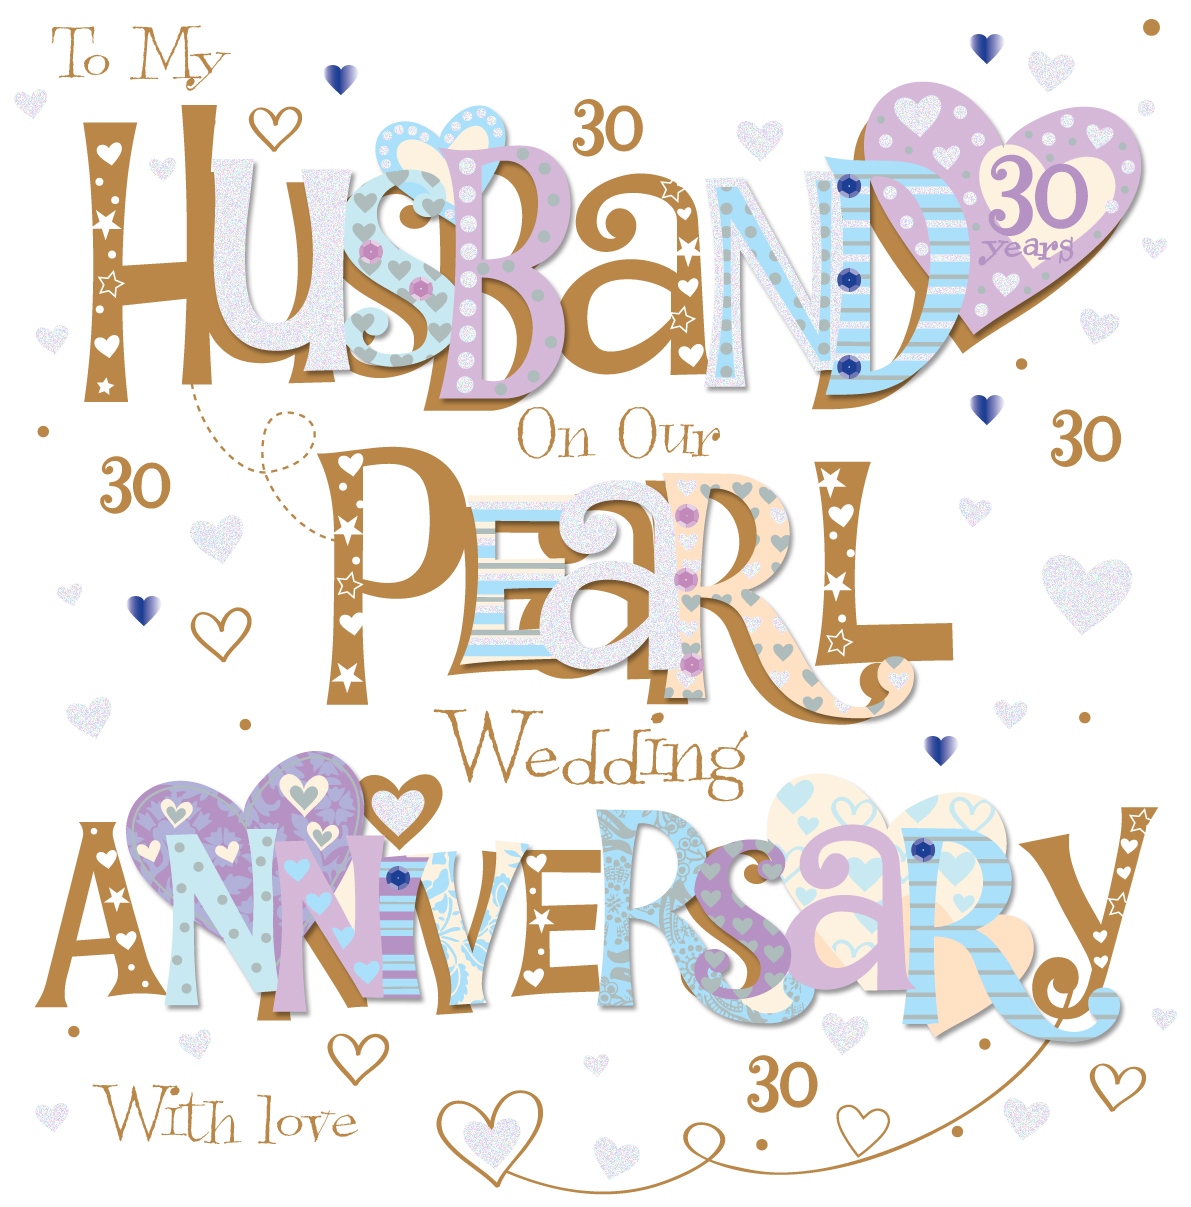 Birthday Cards For Husband Amazon Co Uk: Husband Pearl 30th Wedding Anniversary Greeting Card